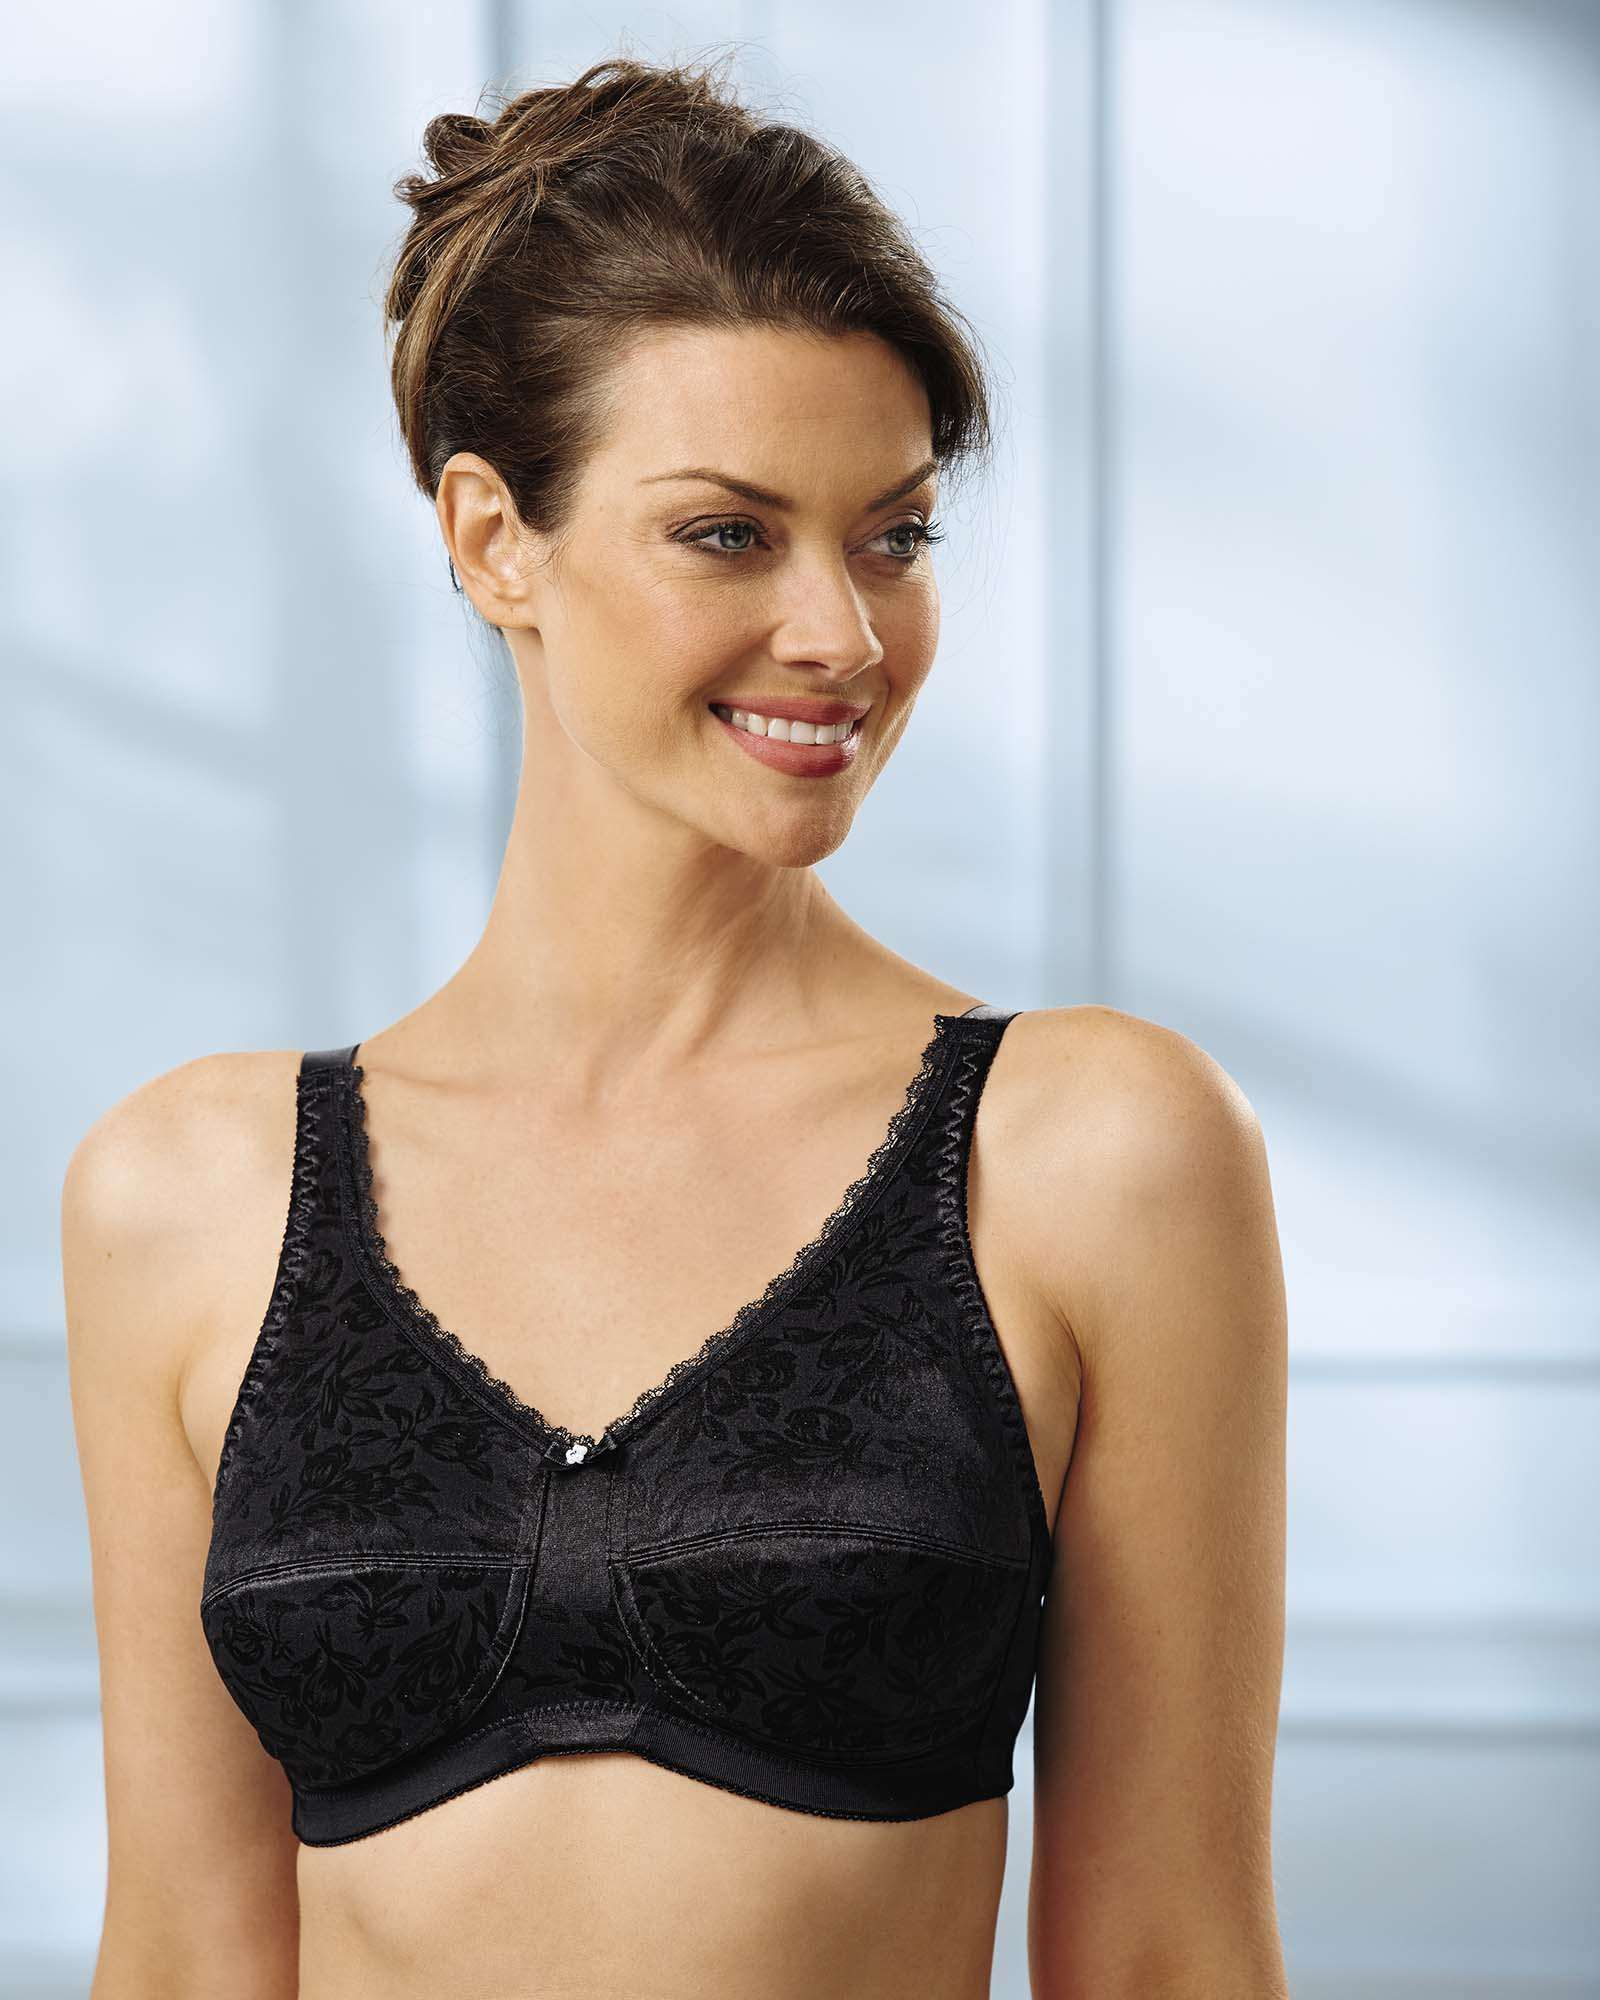 ebfffa1517 Original Fully Back Closure Bra in 2019